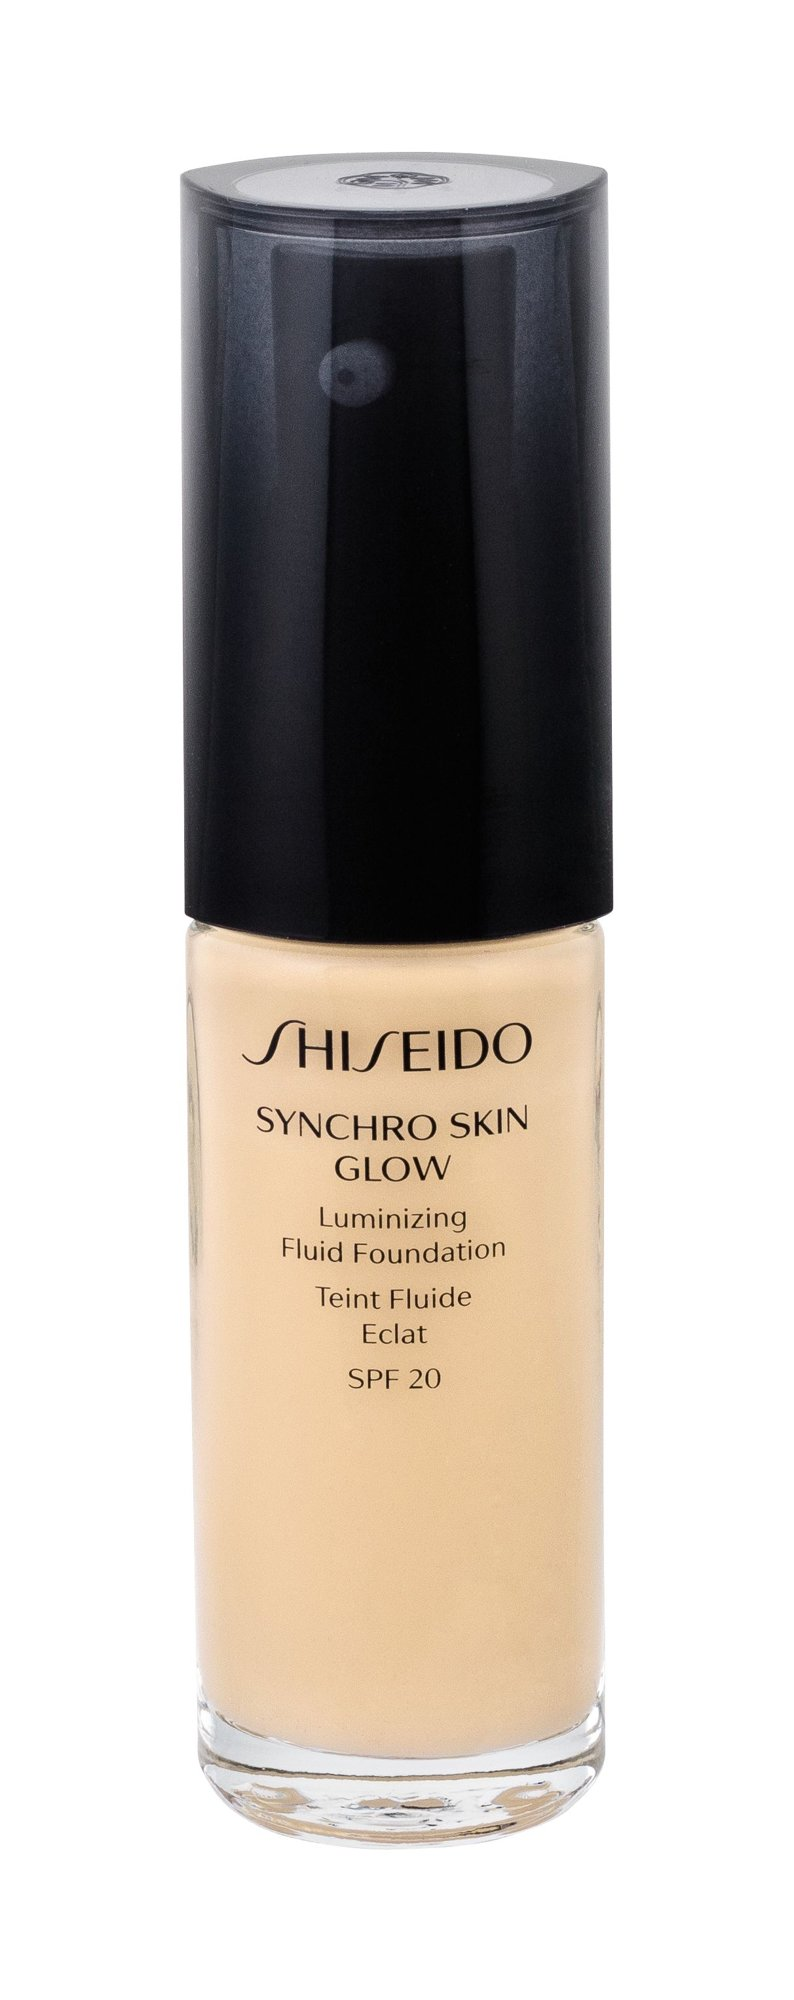 Shiseido Synchro Skin Glow Makeup 30ml Neutral 2